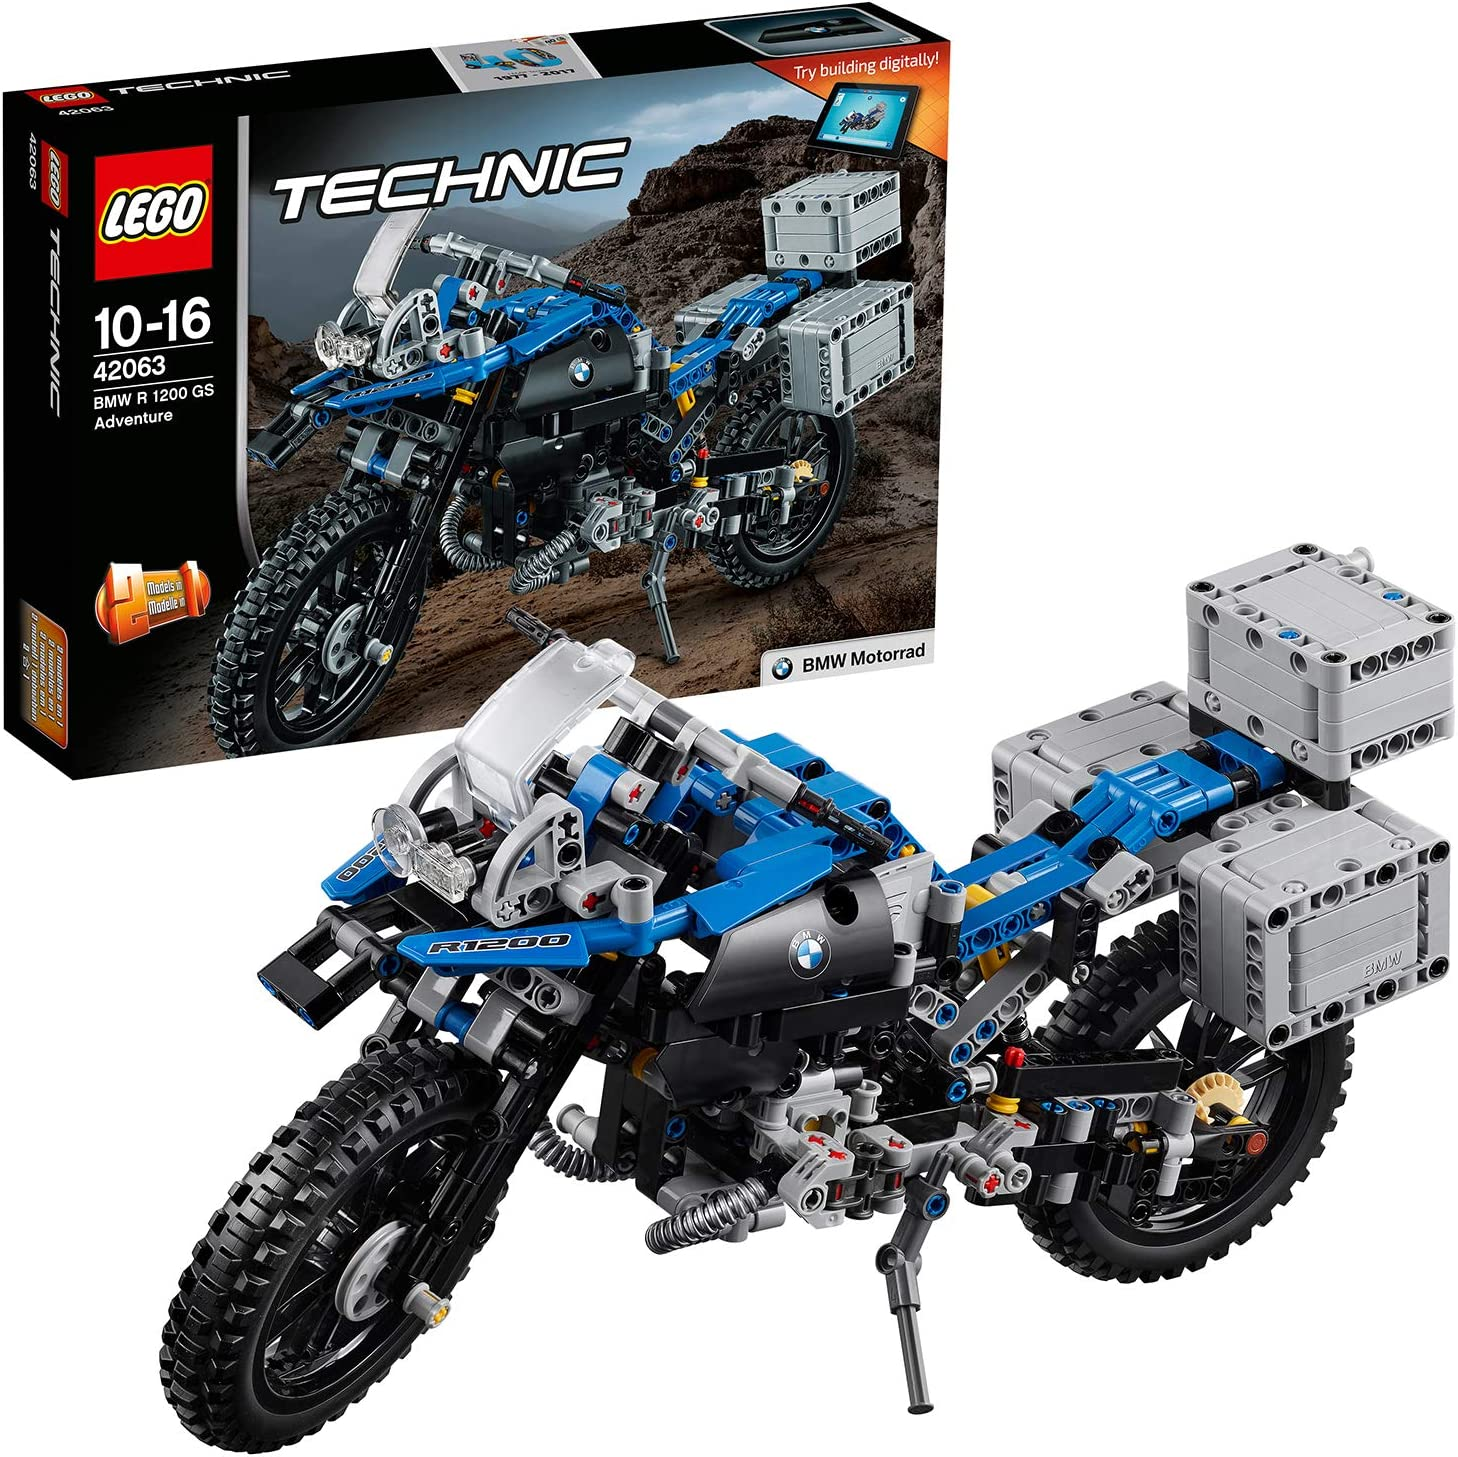 7 Best LEGO Motorcycle Sets Reviews of 2021 12